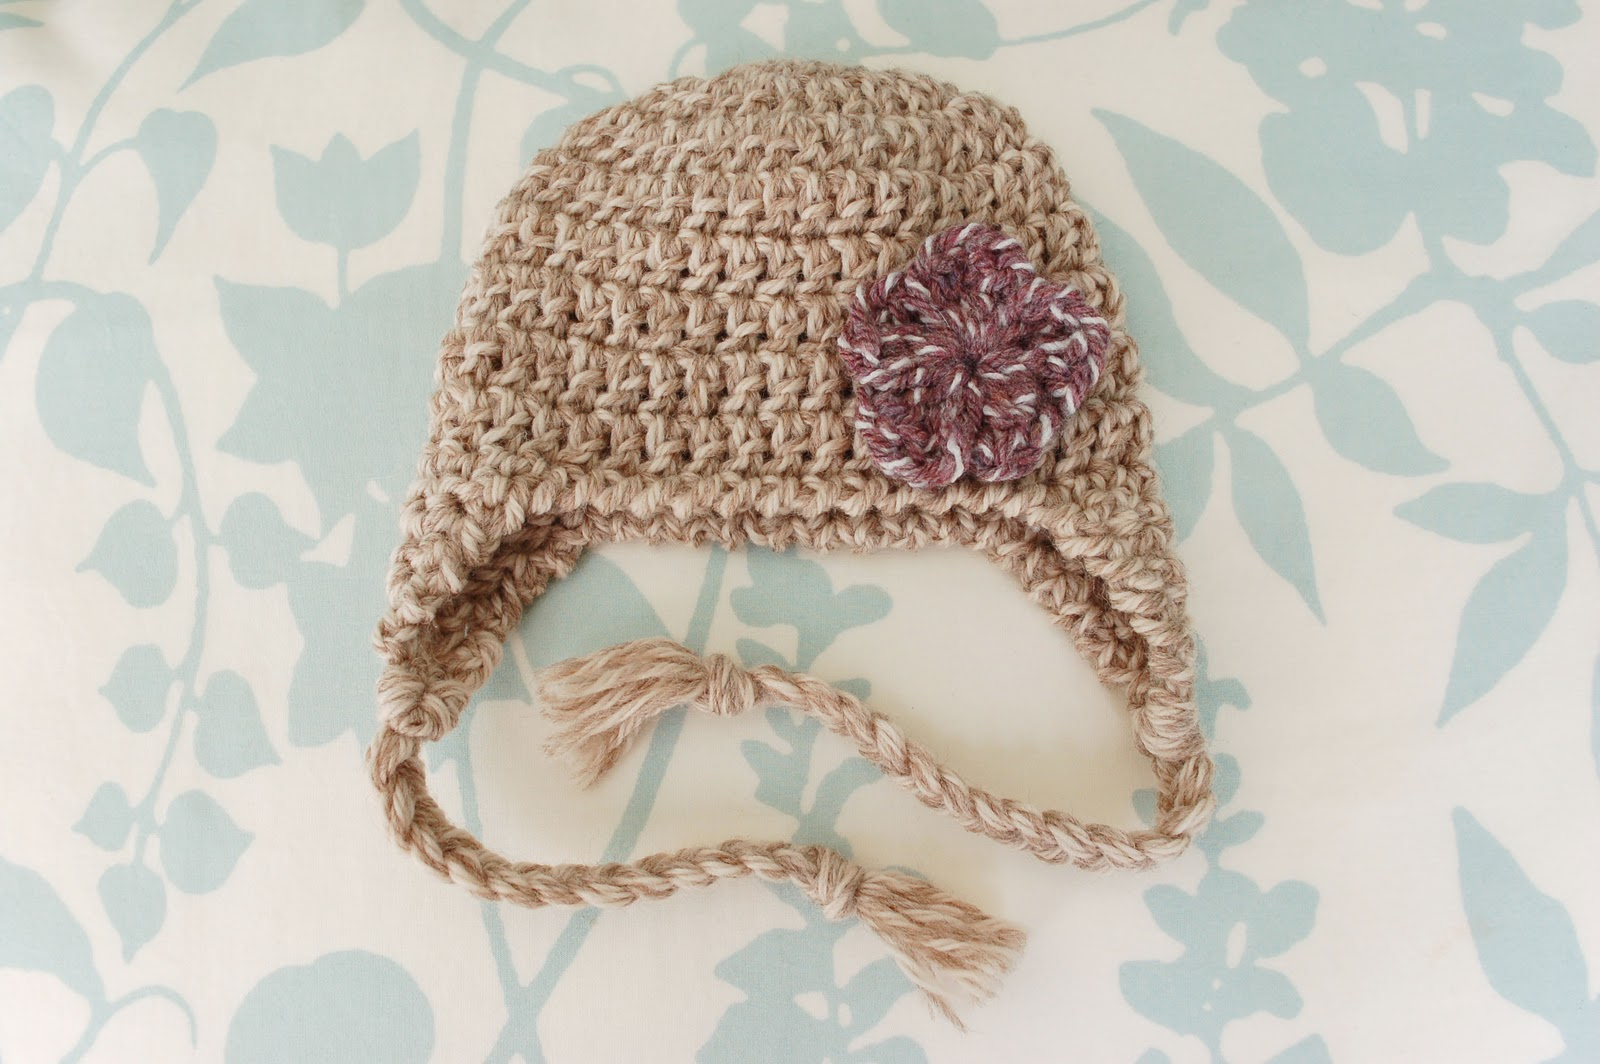 Free Crochet Pattern Toddler Earflap Hat : Alli Crafts: Earflap Hat Newborn Pattern Updated